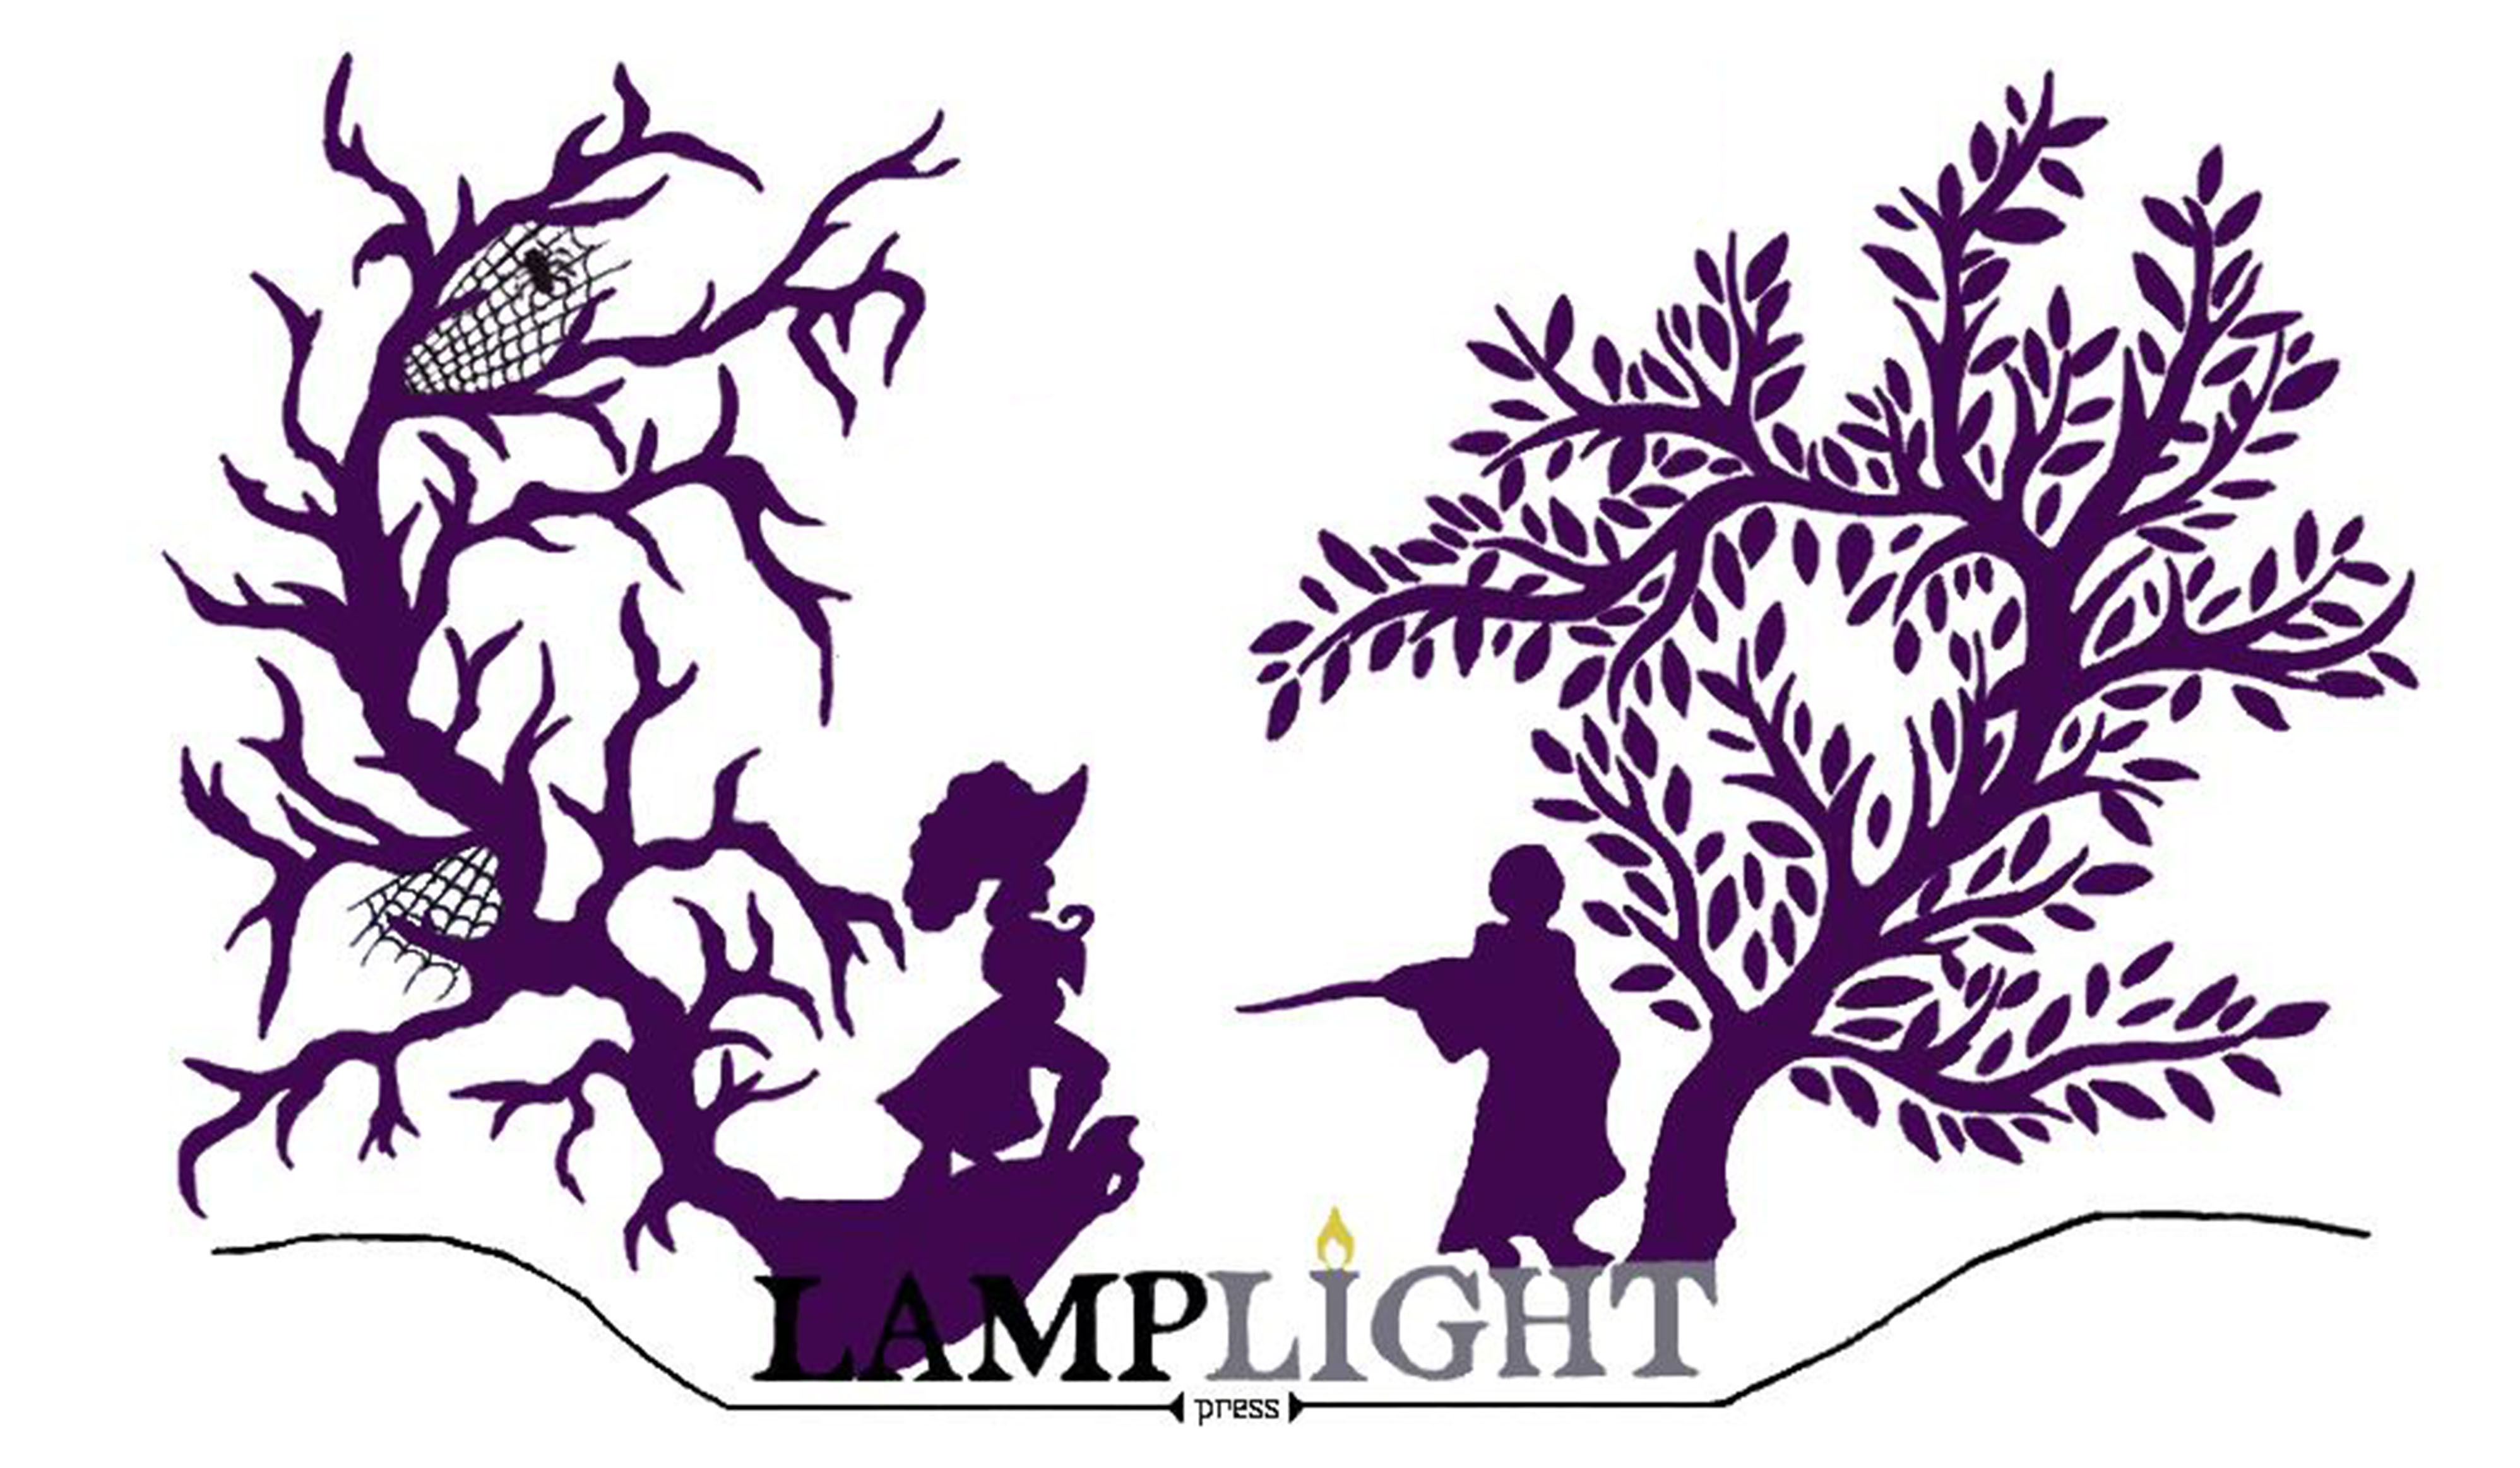 Lamplight Press silhouette created by Jade Ledingham